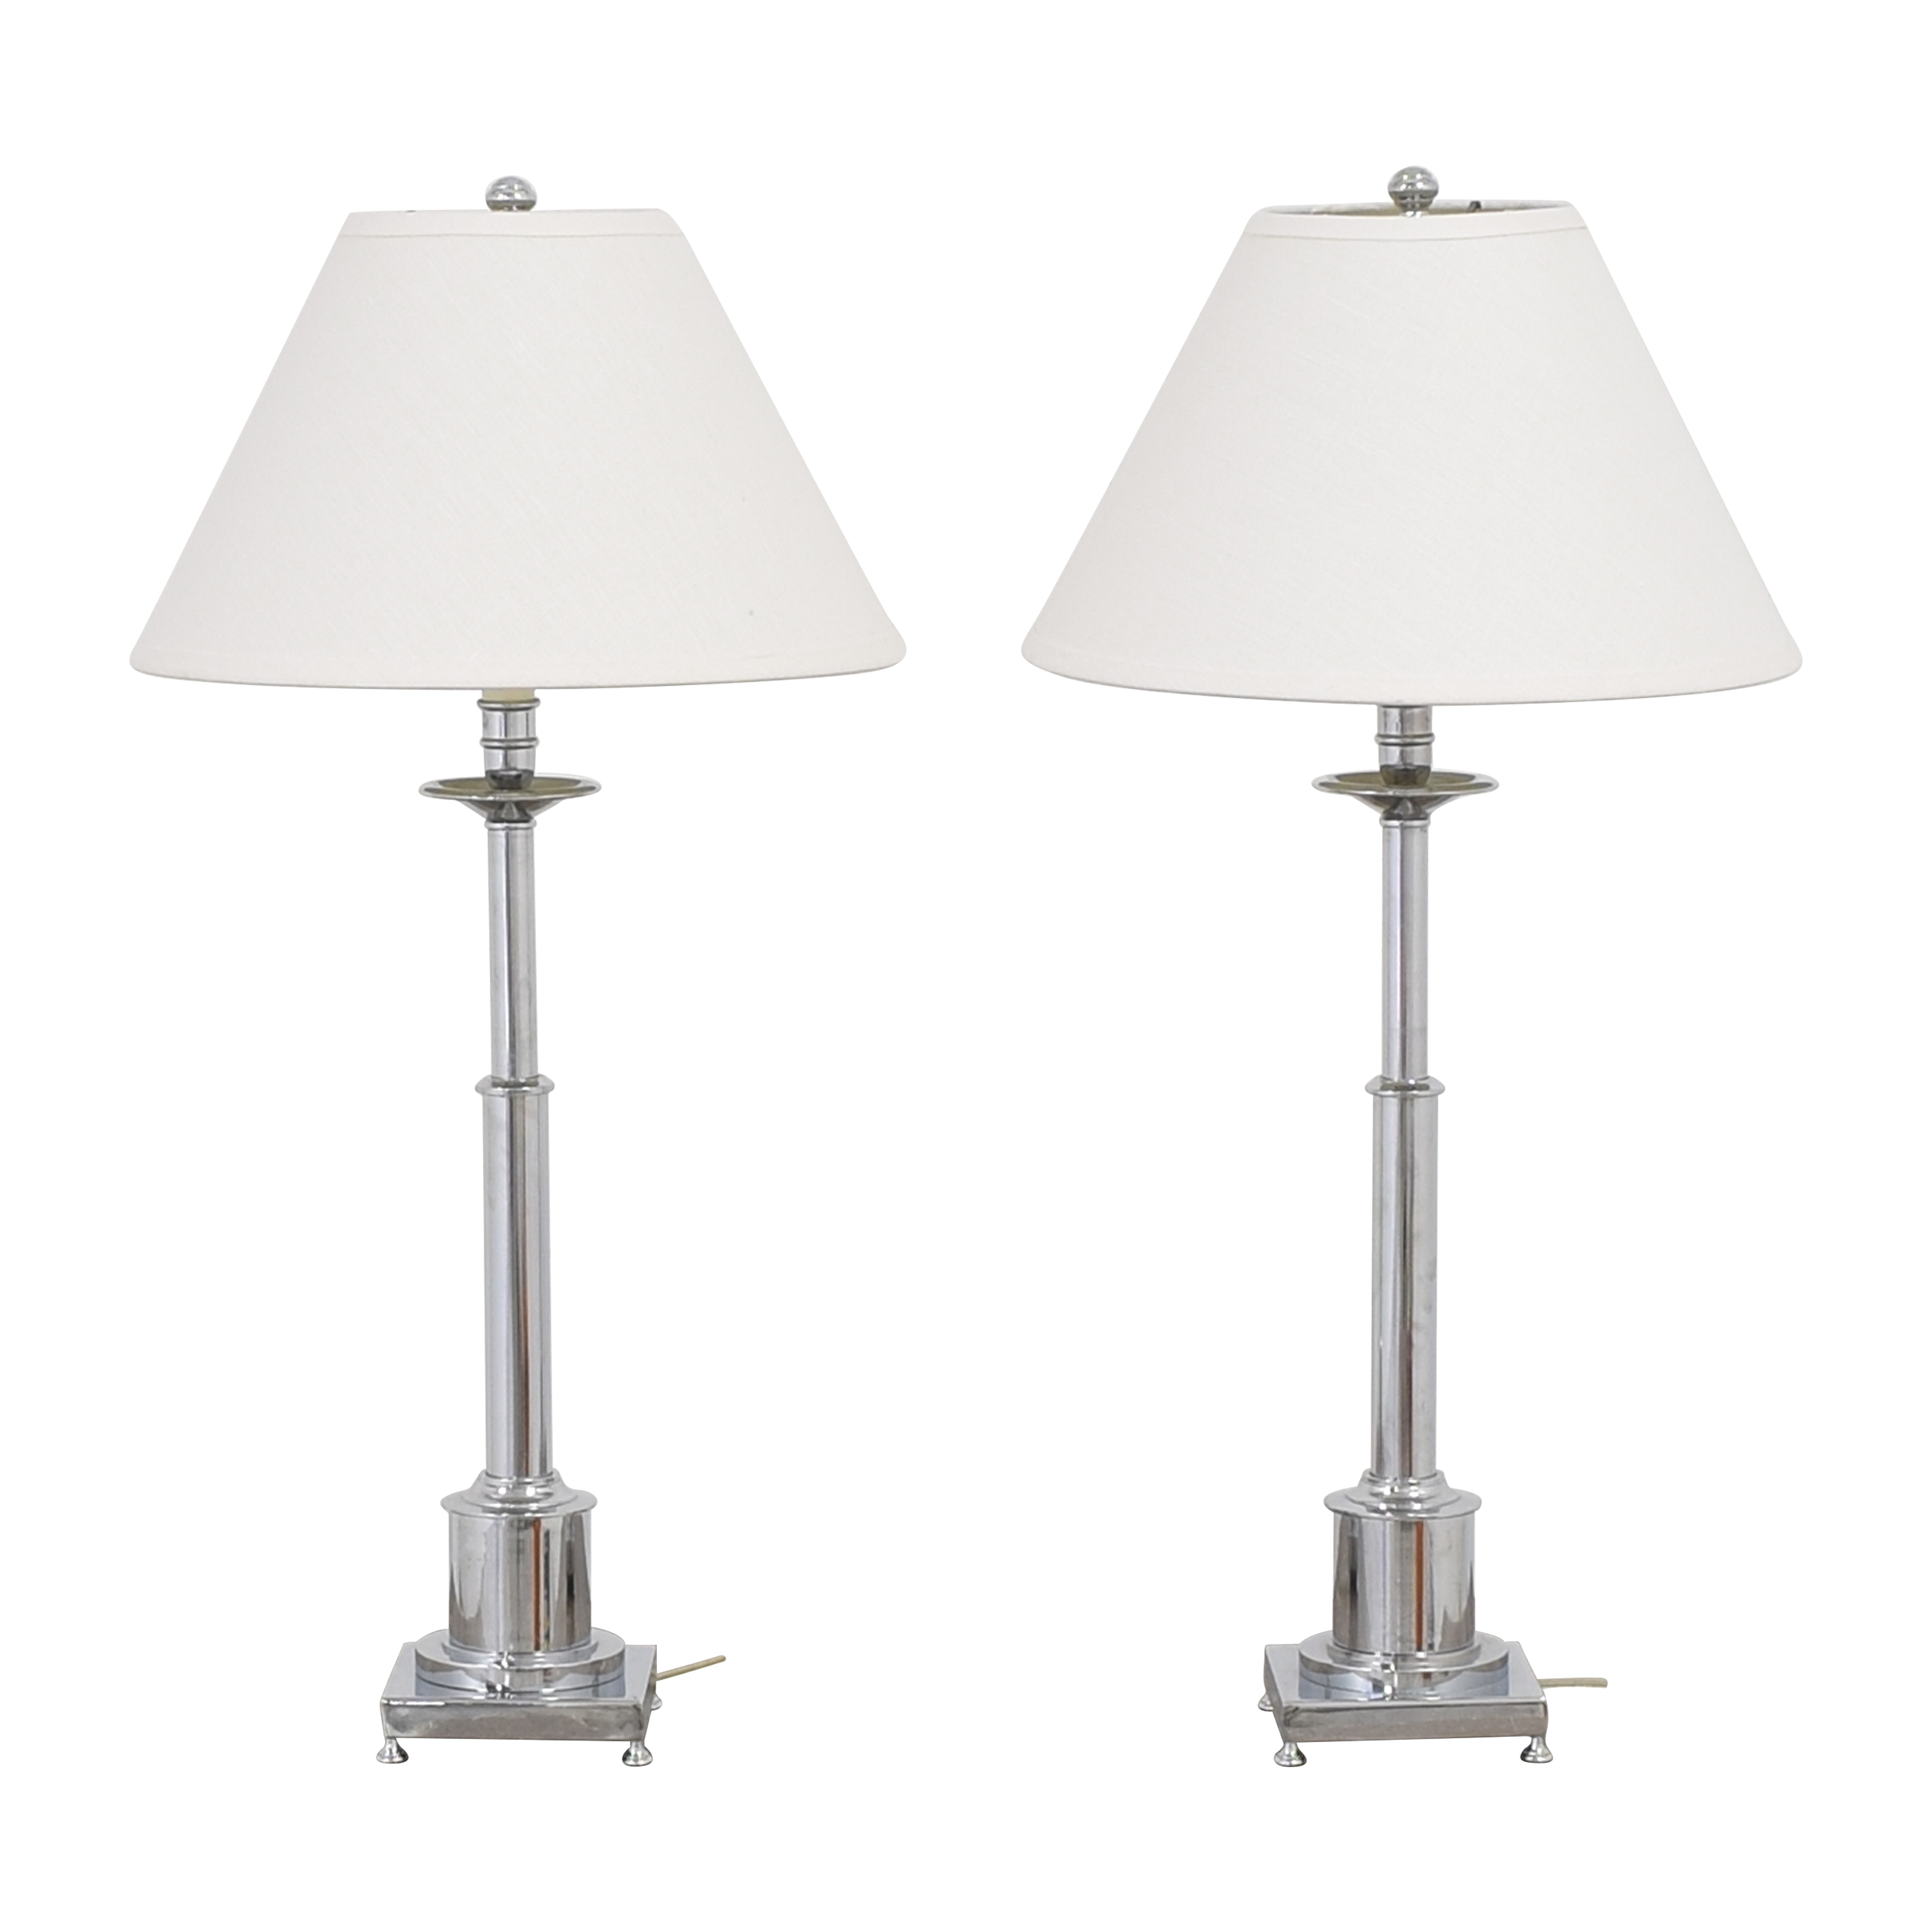 Restoration Hardware Restoration Hardware Adjustable Table Lamps on sale